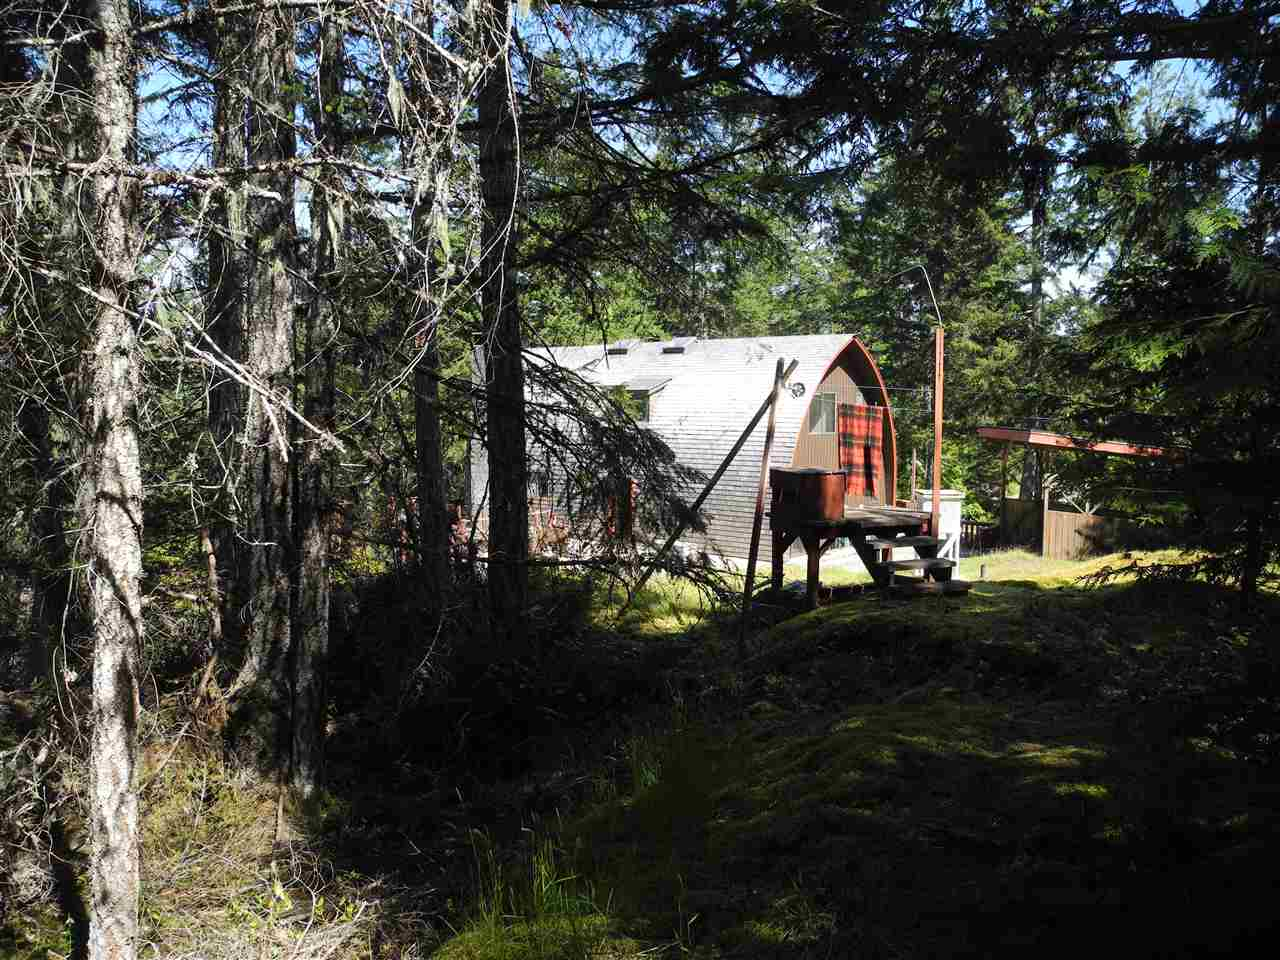 Photo 5: 4436 MCLINTOCK Road in Pender Harbour: Pender Harbour Egmont House for sale (Sunshine Coast)  : MLS(r) # R2068891